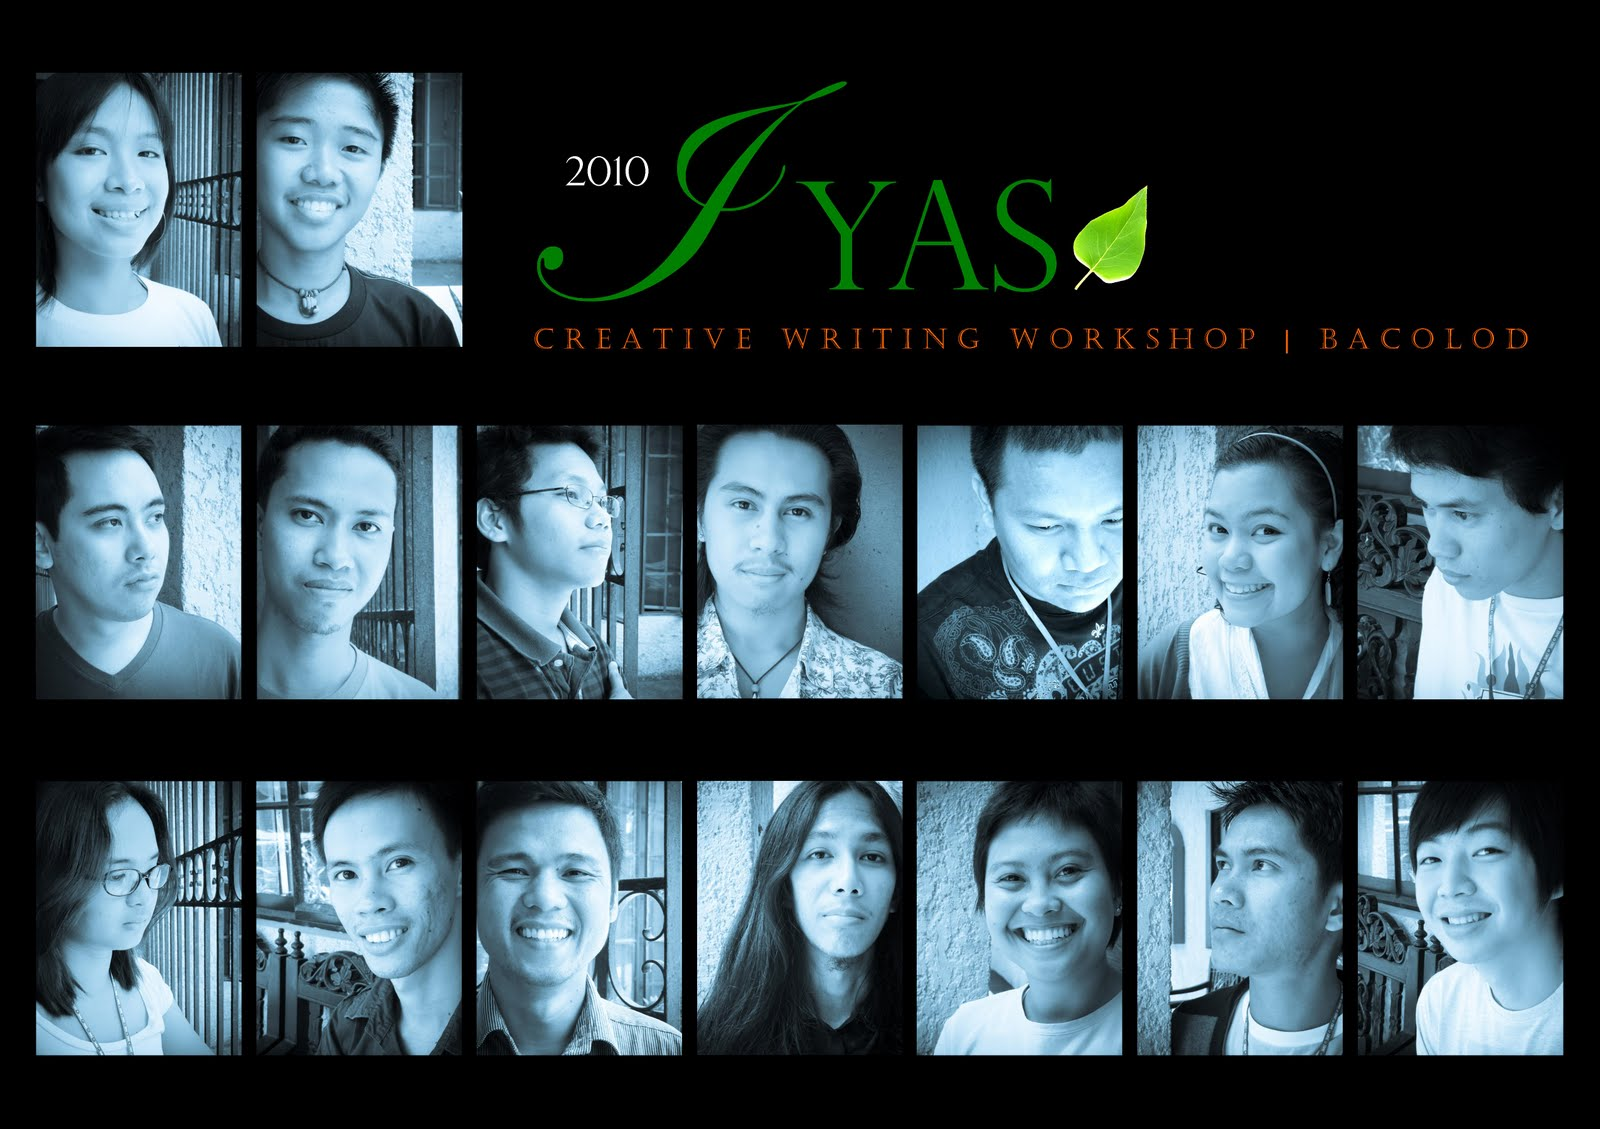 iyas creative writing workshop